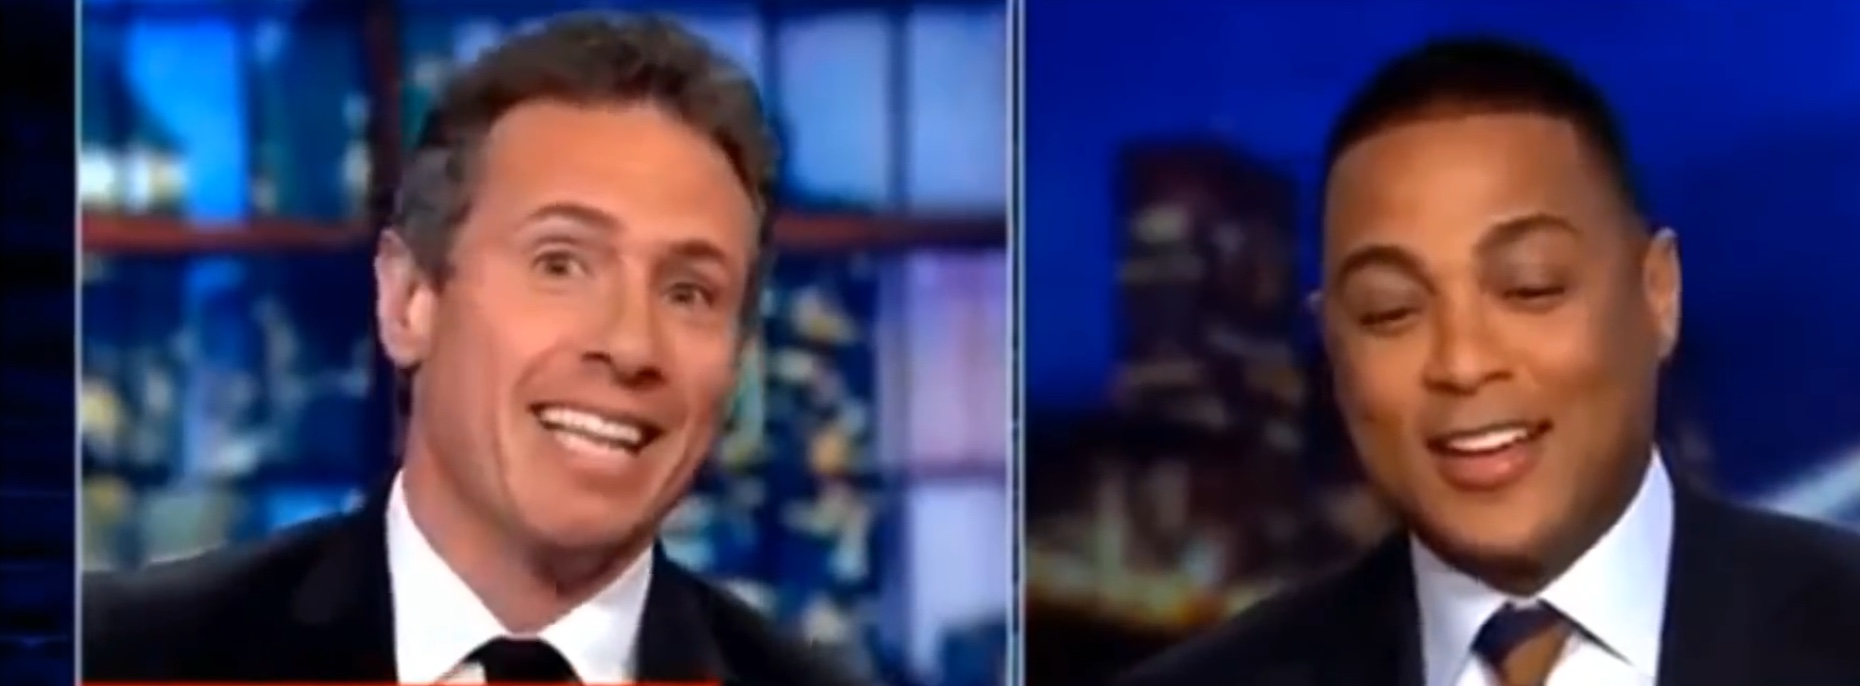 "CNN evening hosts Chris Cuomo and Don Lemon offer an impromptu duet of the ""All in the Family"" theme song, March 12, 2019. YouTube screenshot."